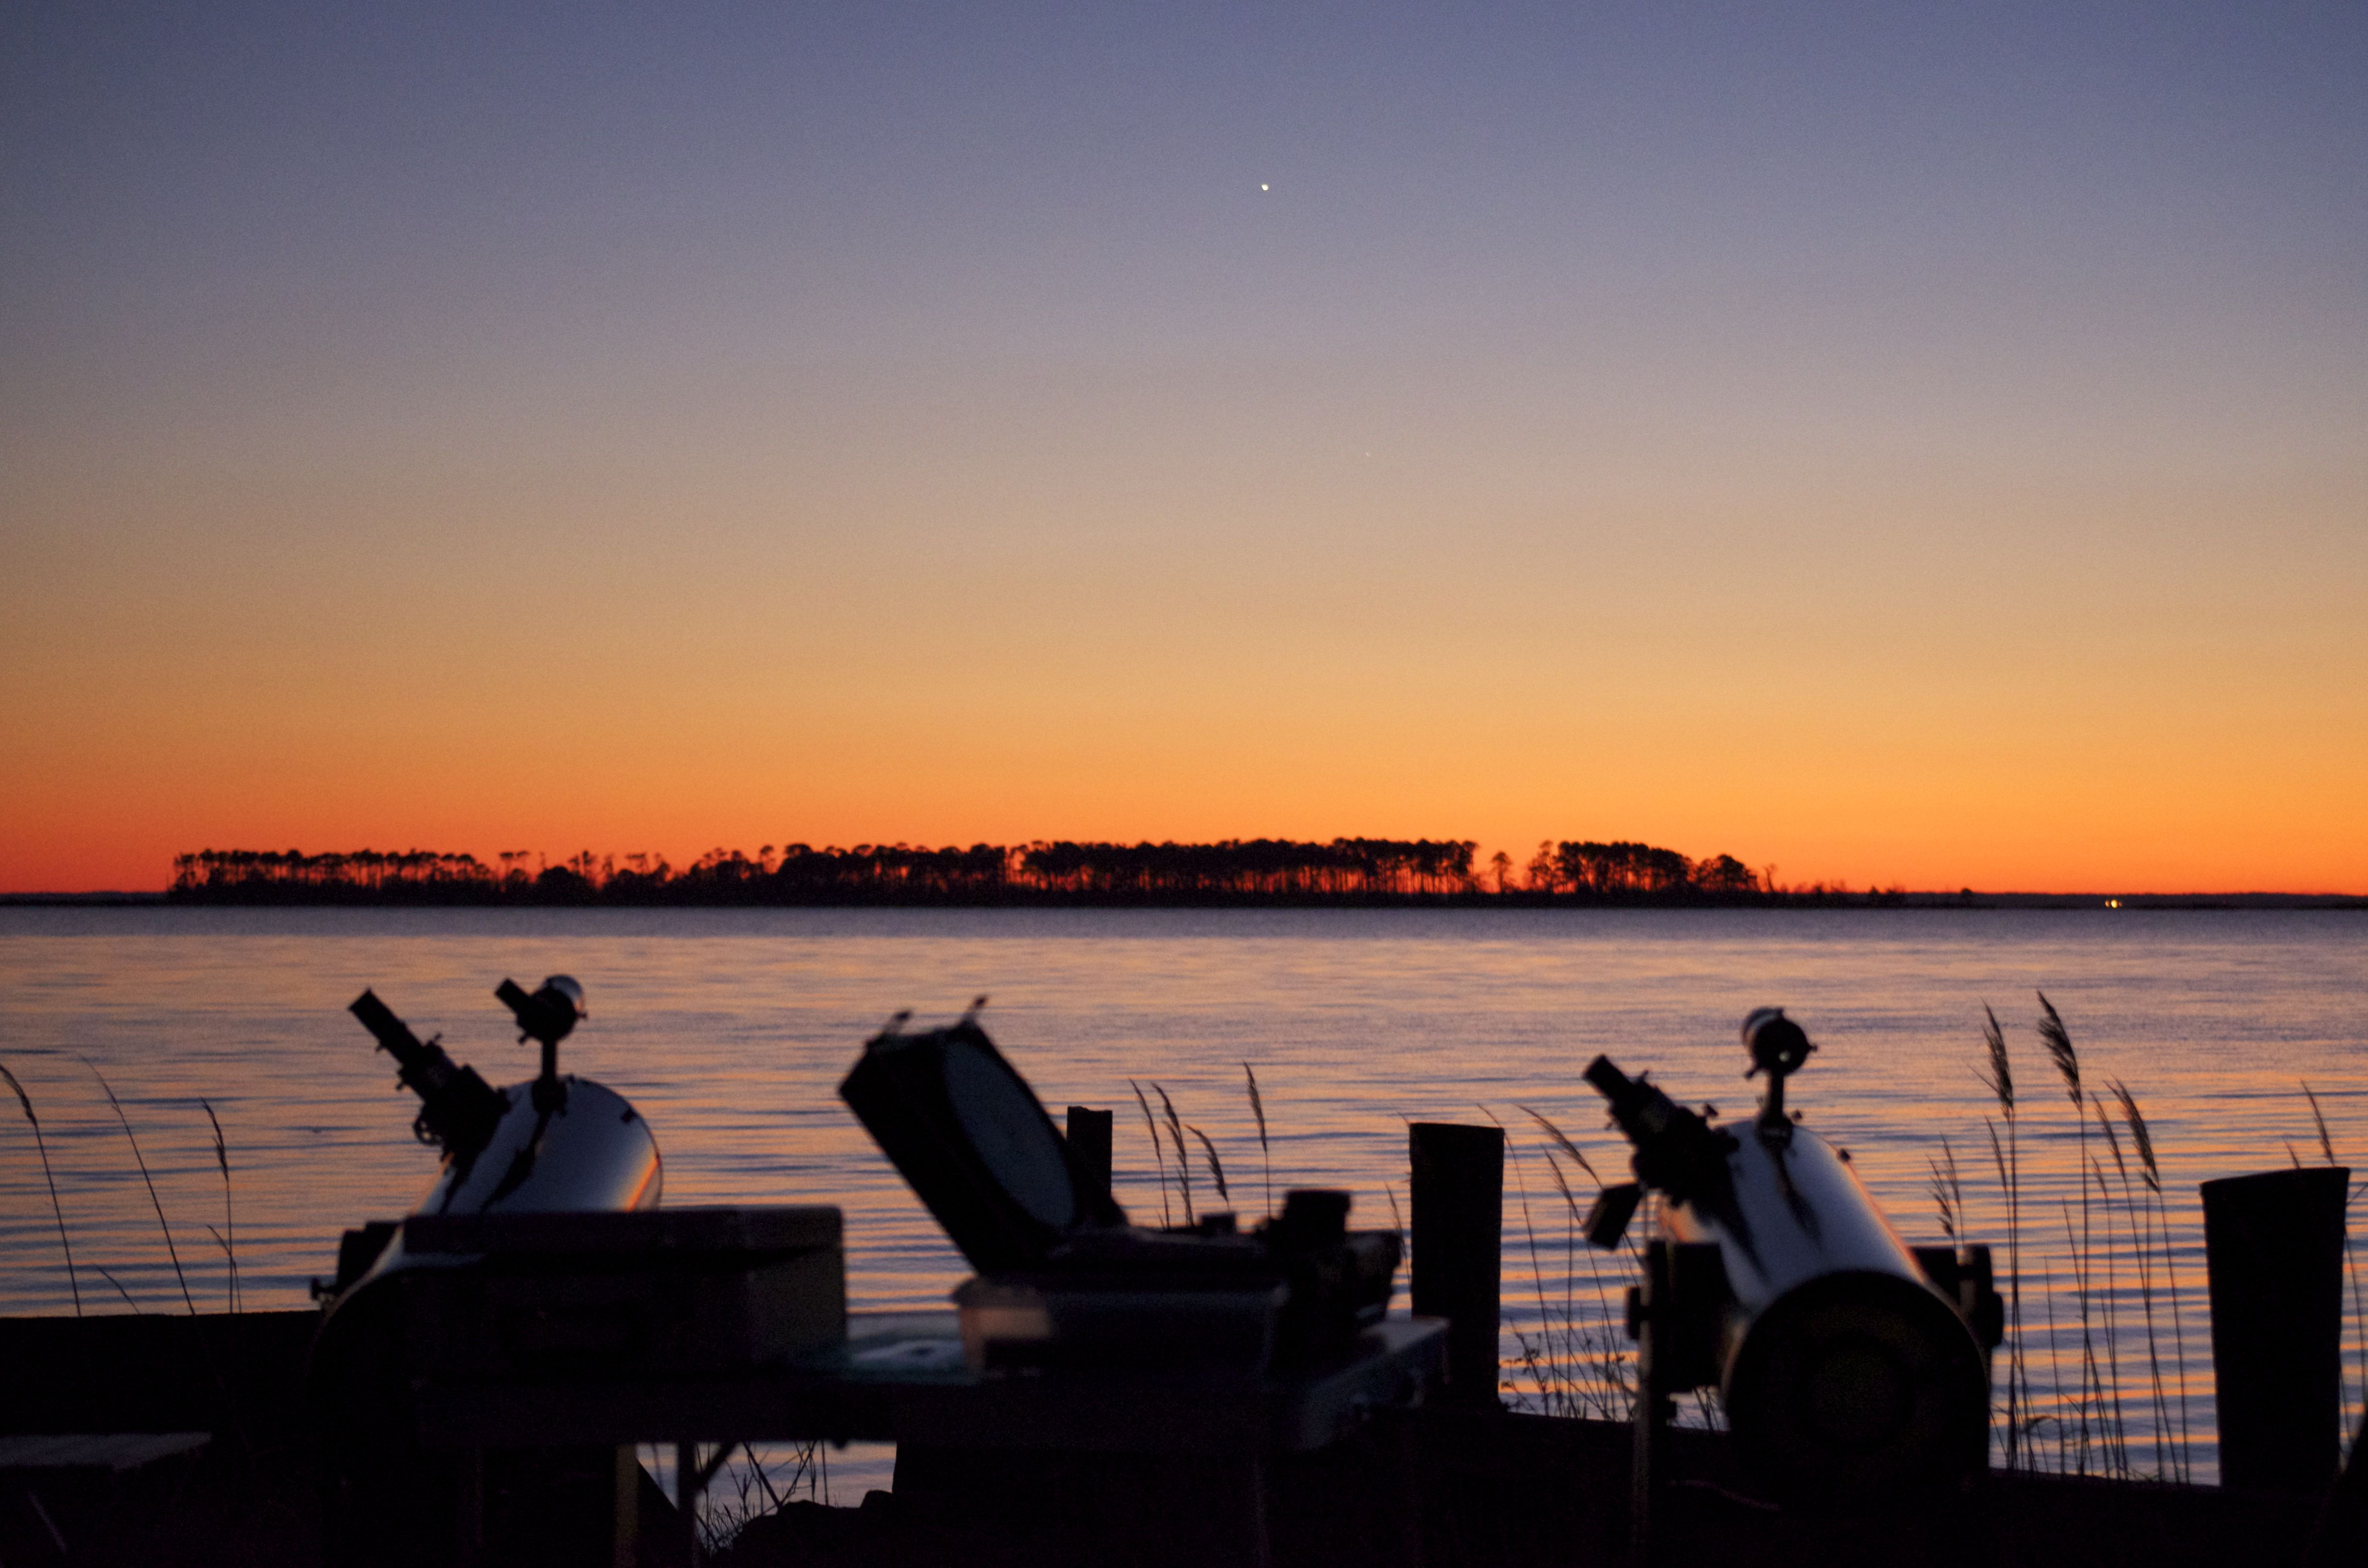 XT8s Scanning for Planets at Sunset